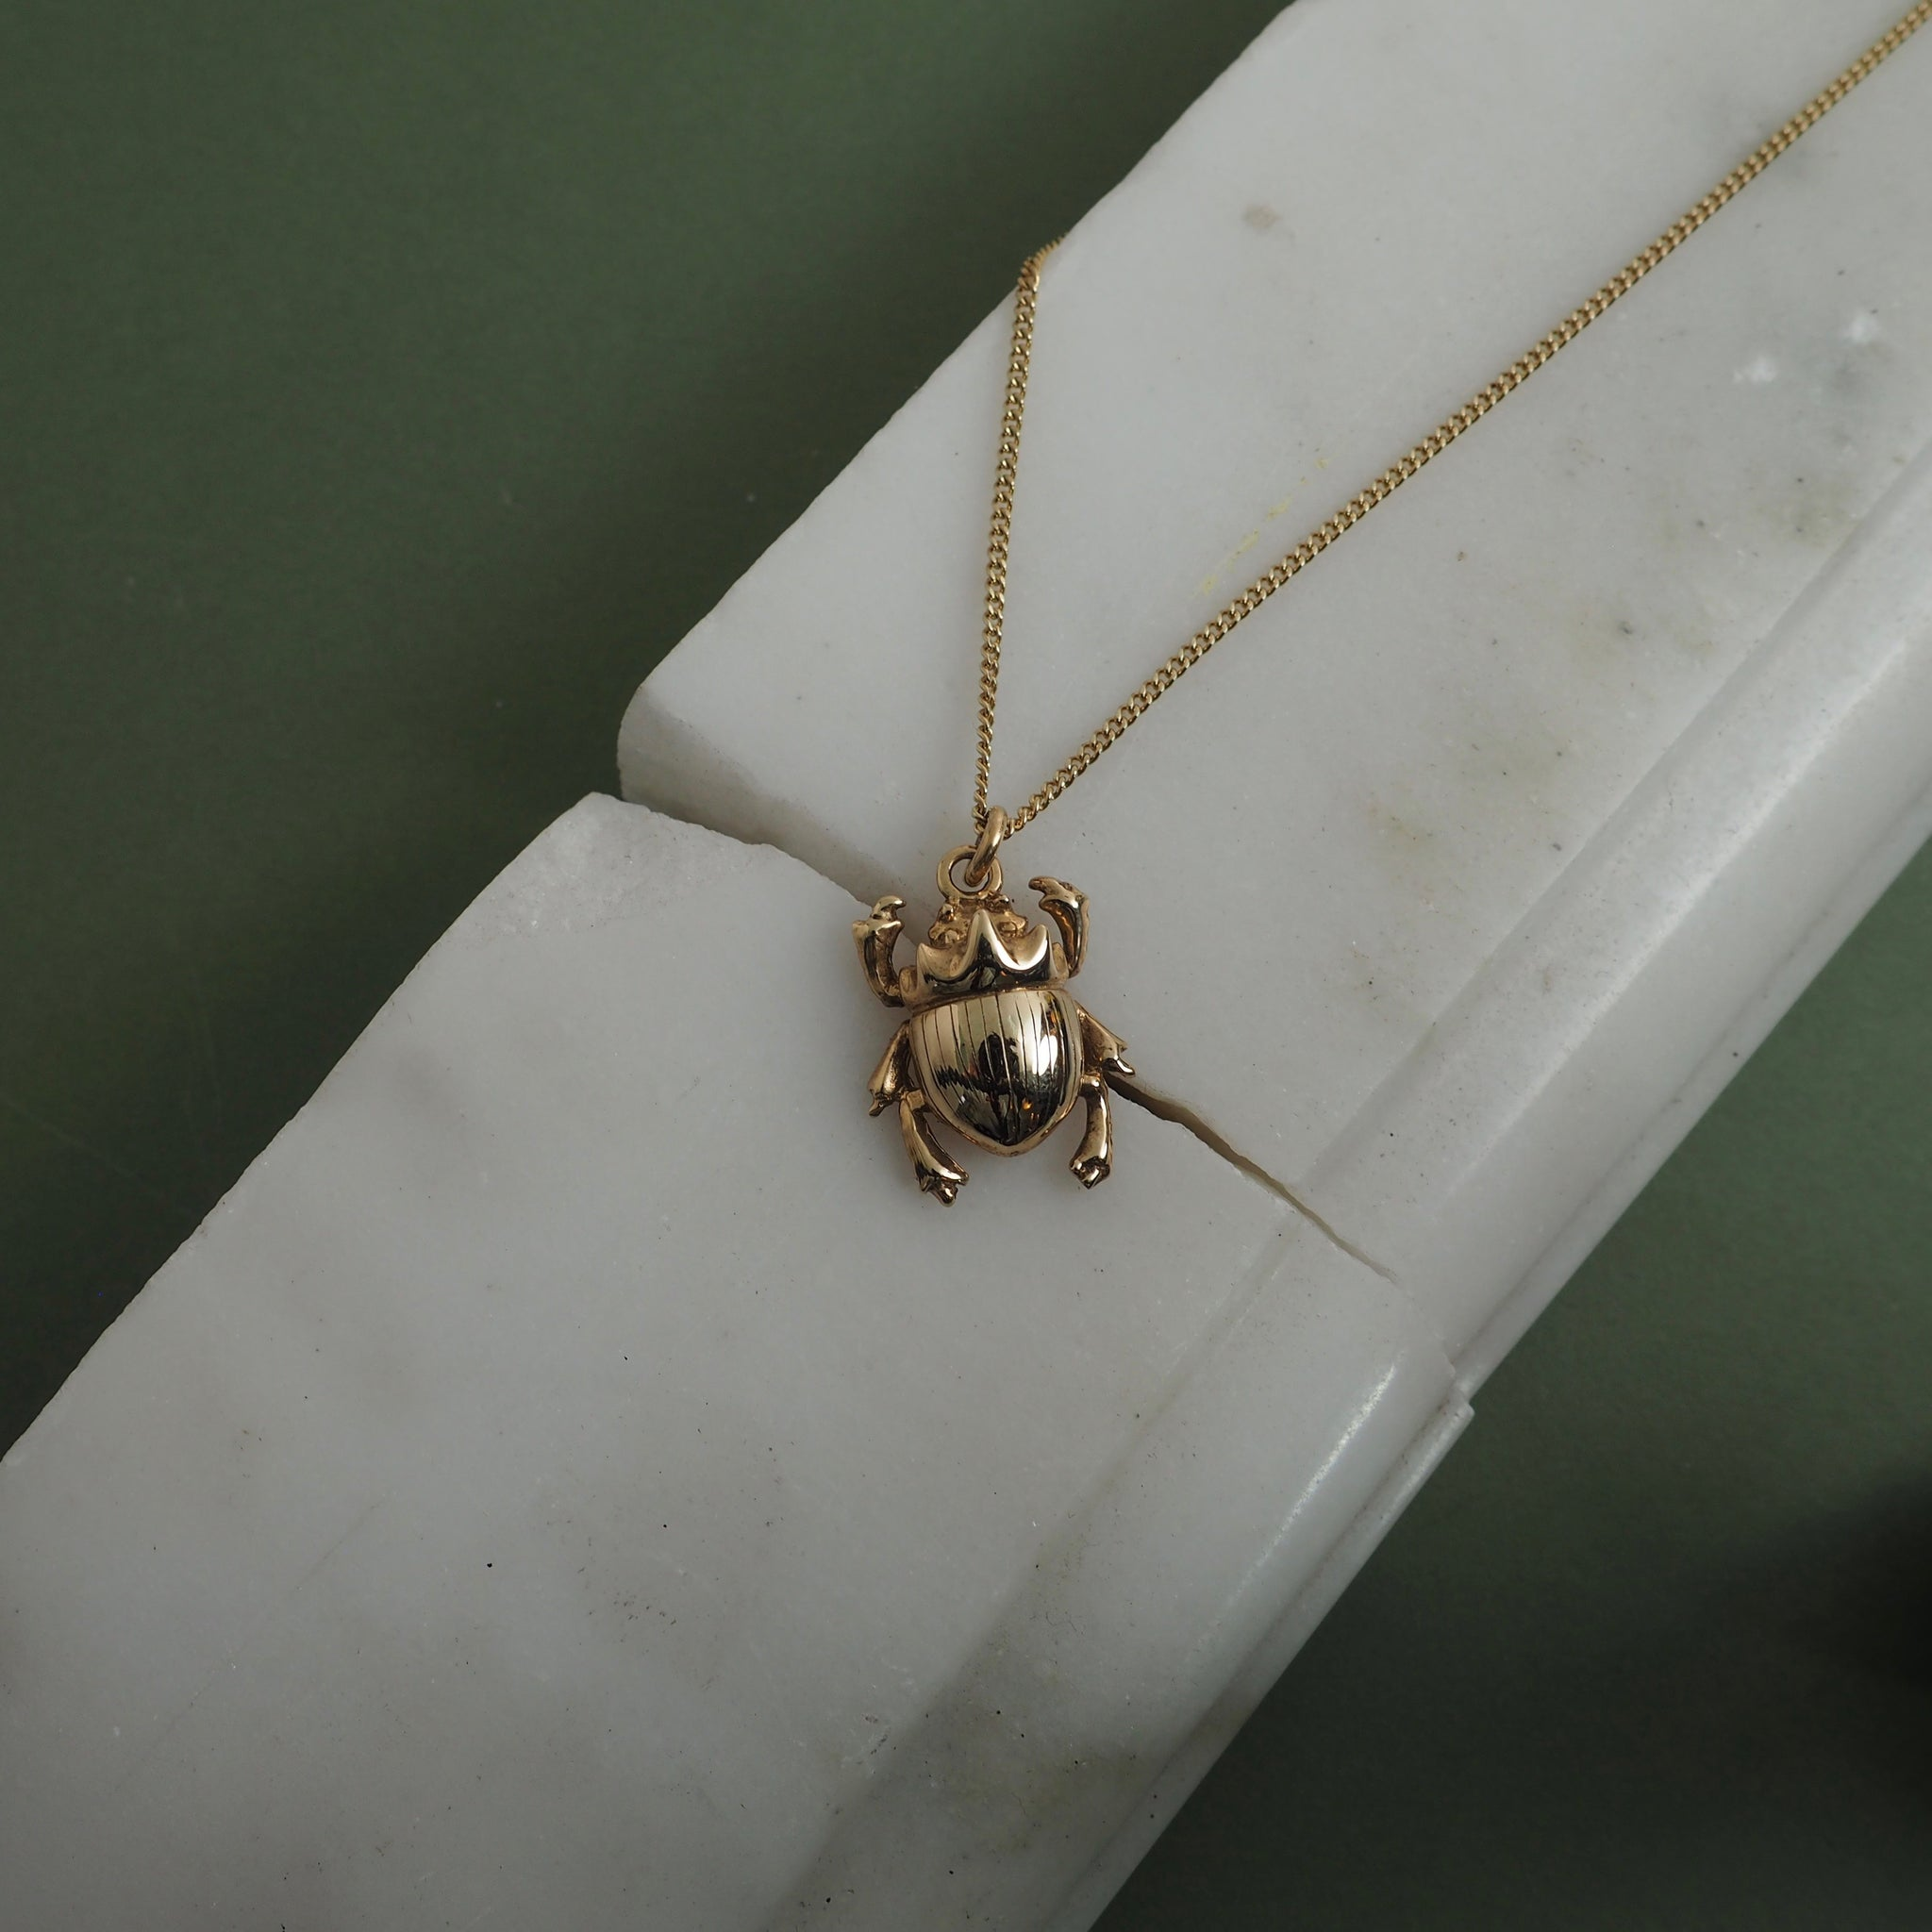 9ct Gold Little Scarab Beetle Necklace by Yasmin Everley